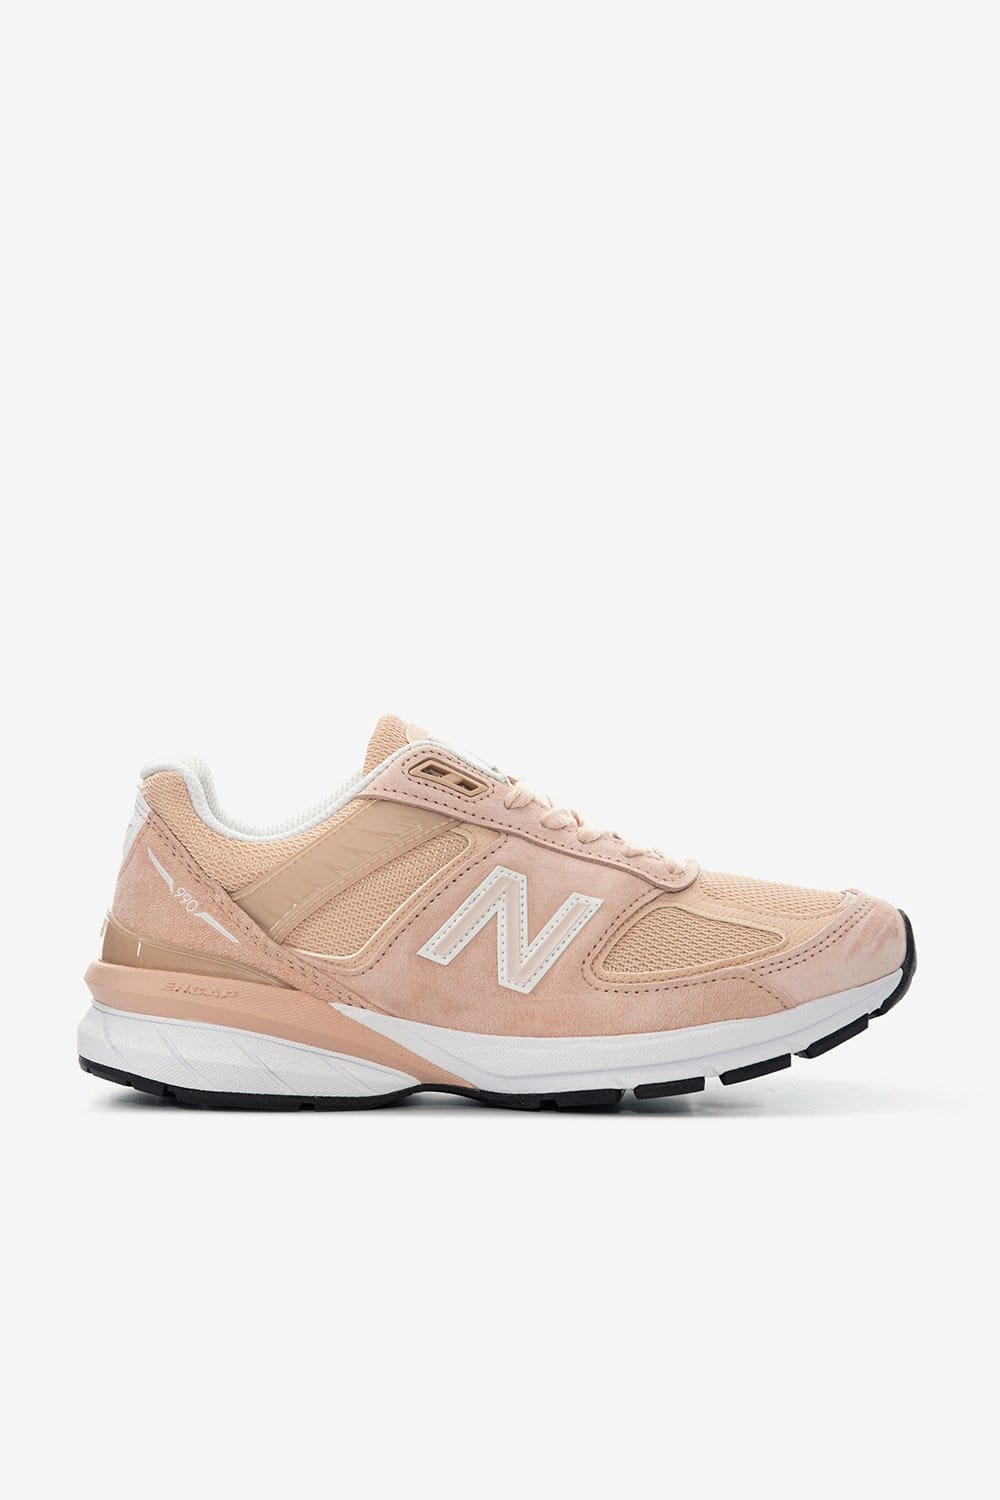 New Balance Footwear MADE 990V5 MIUS WMNS